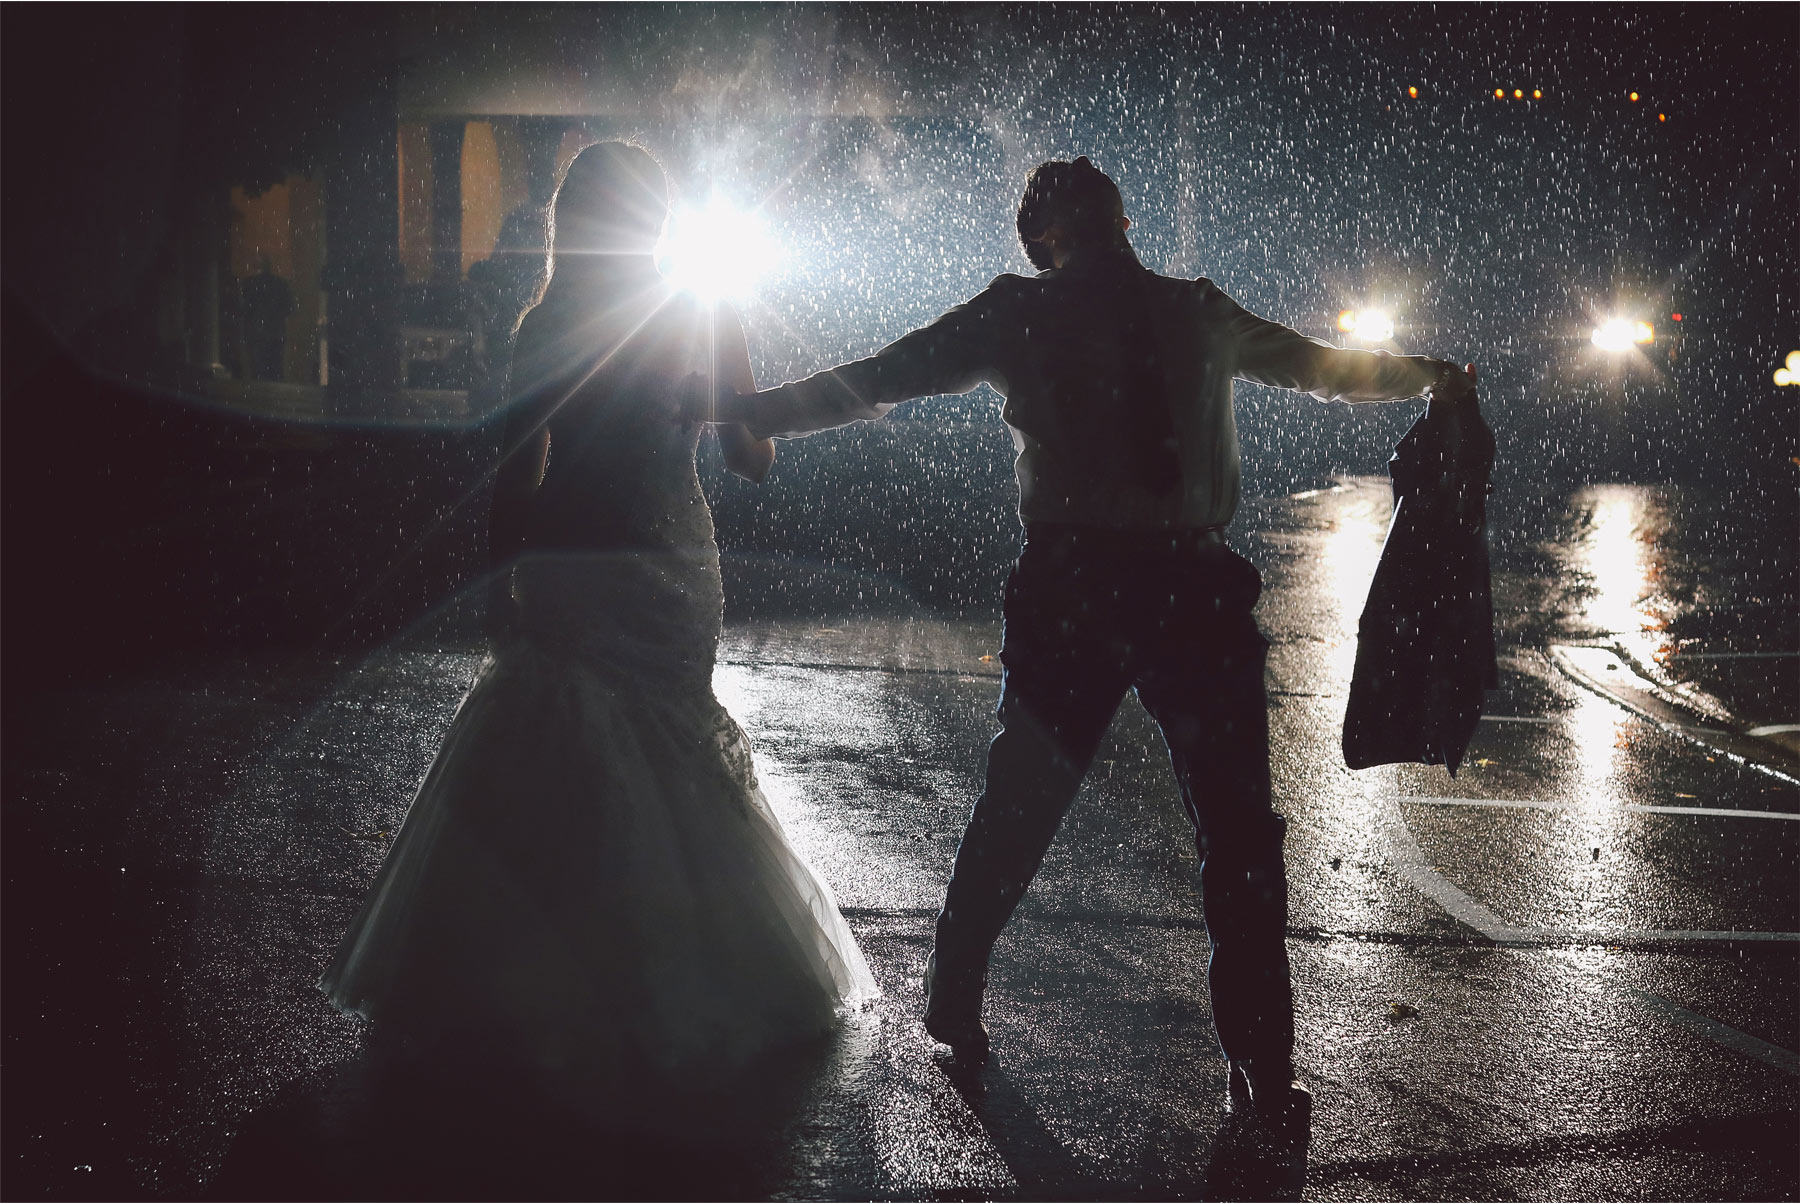 19-Minneapolis-Minnesota-Wedding-Photography-by-Vick-Photography-Lafayette-Club--Rain-Snow-Bride-and-Groom-Night-Photography-Jana-and-Matt.jpg